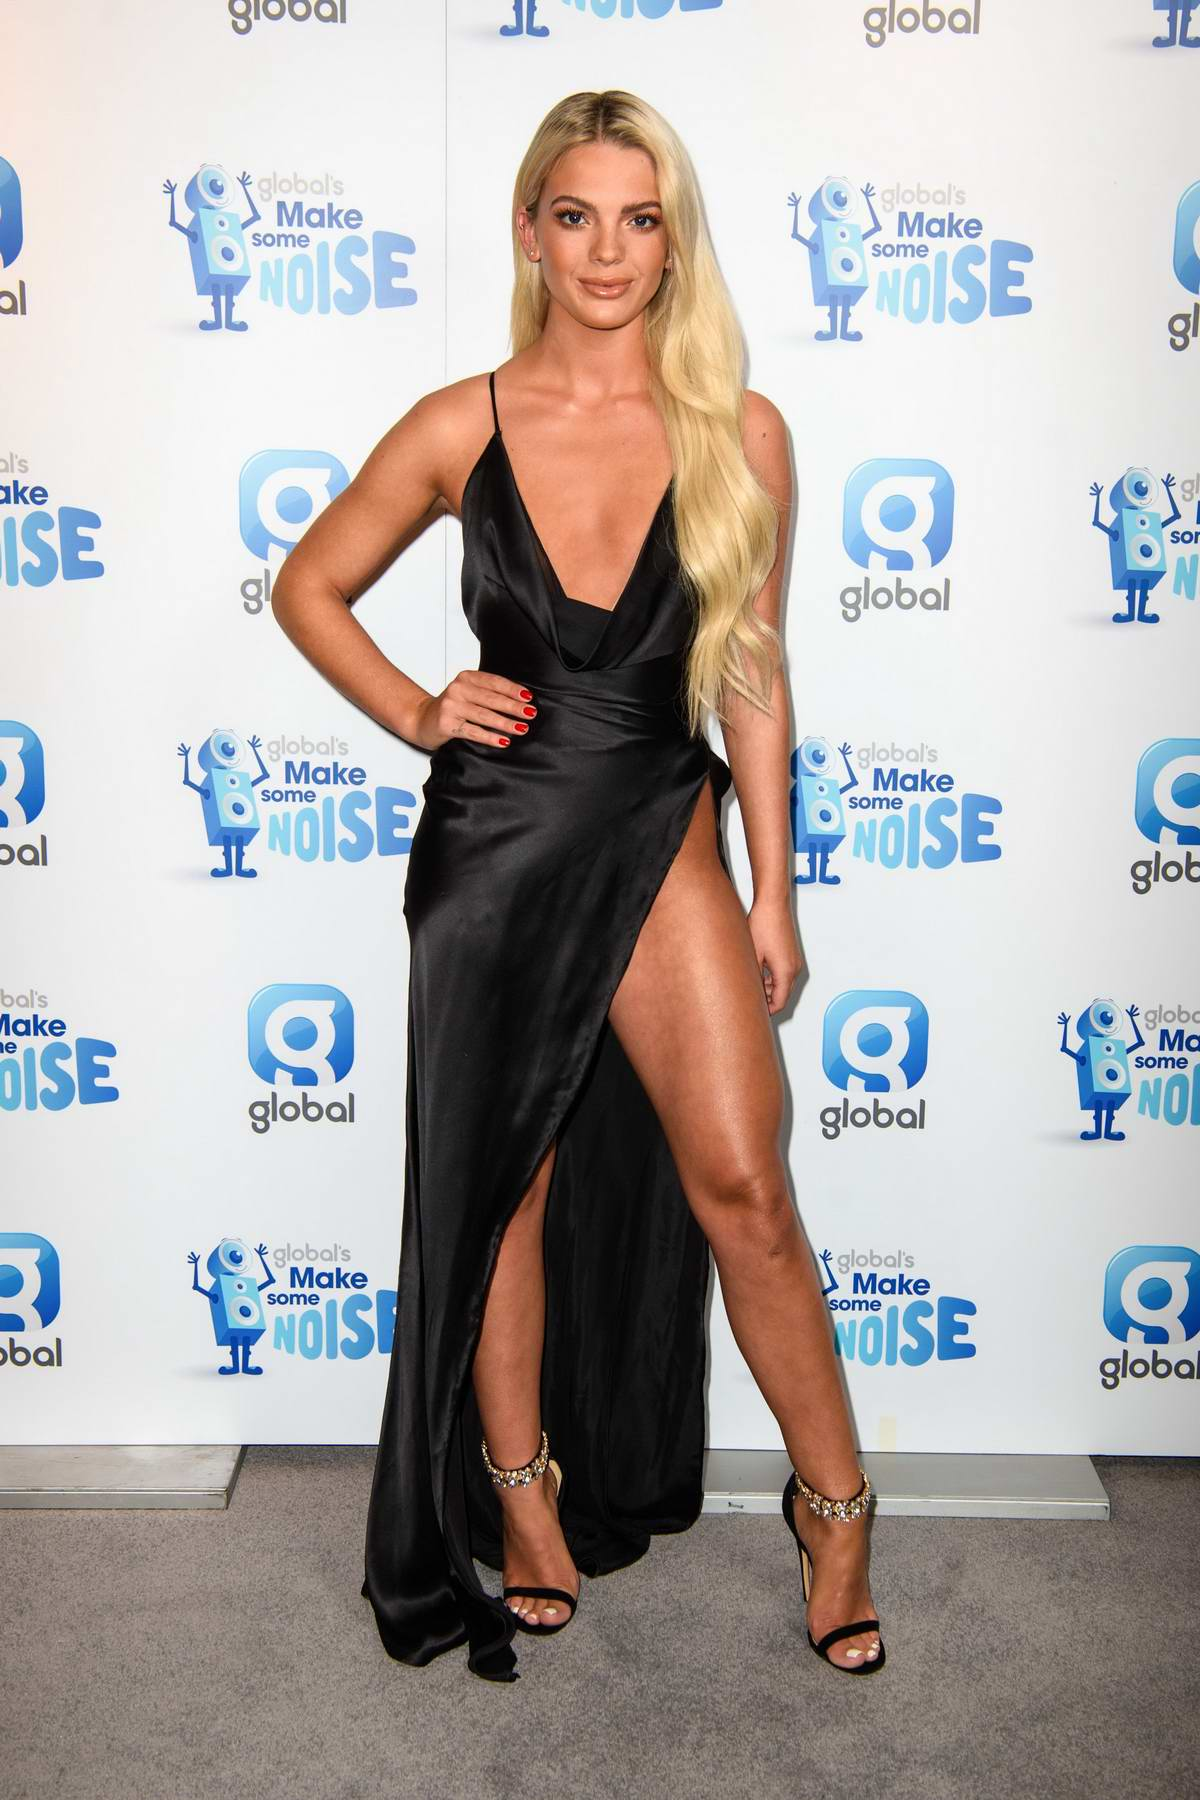 Louisa Johnson at the Global's Make Some Noise night at Supernova in London